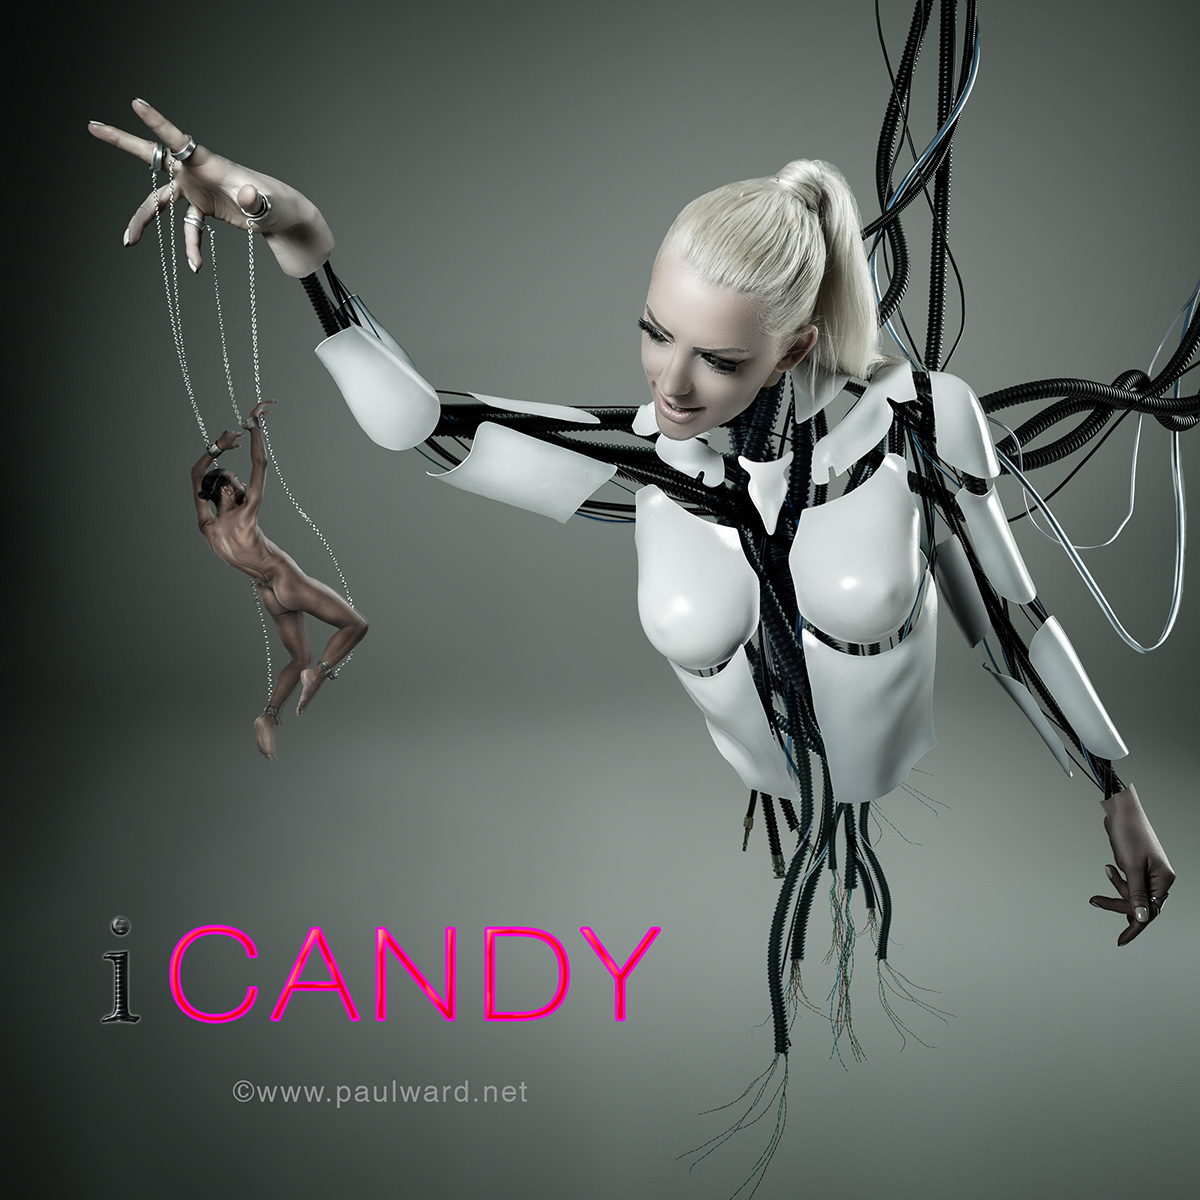 iCandy poster photography by Birmingham photographer Paul Ward